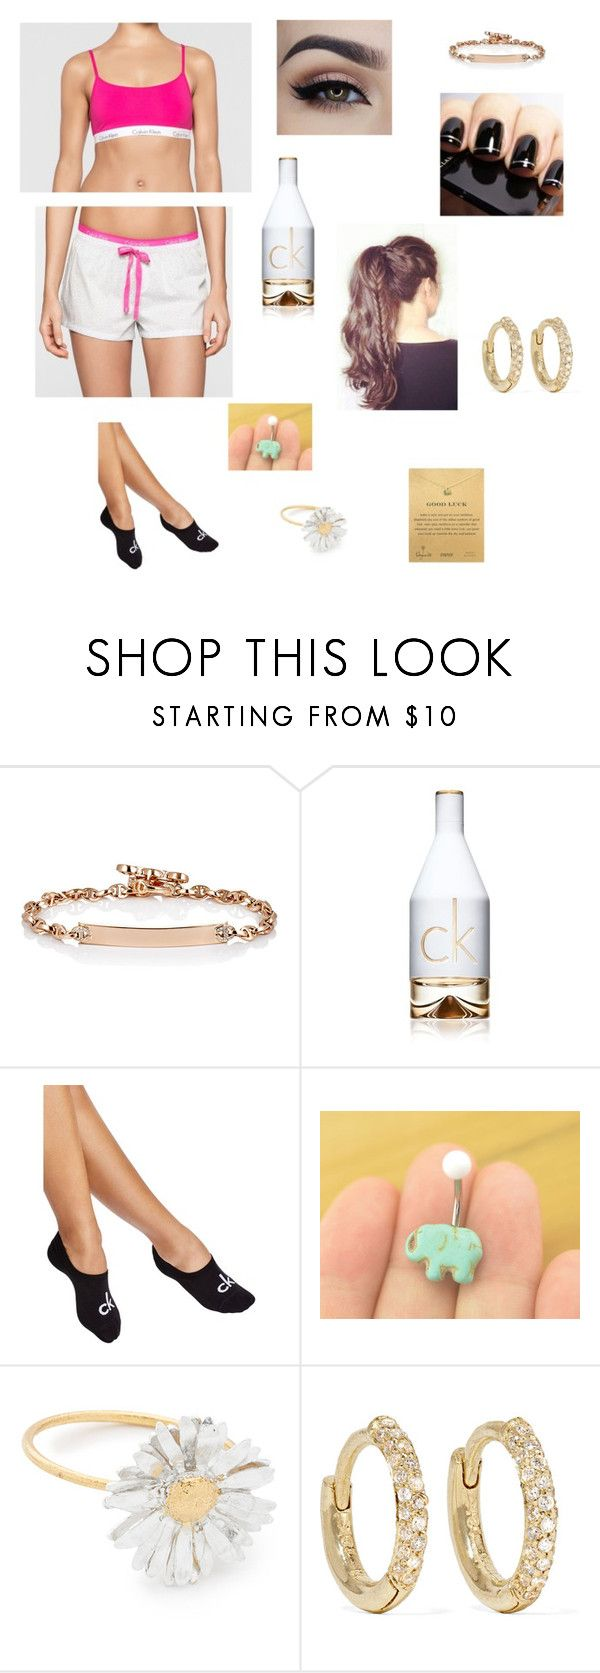 Untitled #222 by katrine-frid on Polyvore featuring Calvin Klein, Jennifer Meyer Jewelry, Dogeared, Hoorsenbuhs and Alex Monroe